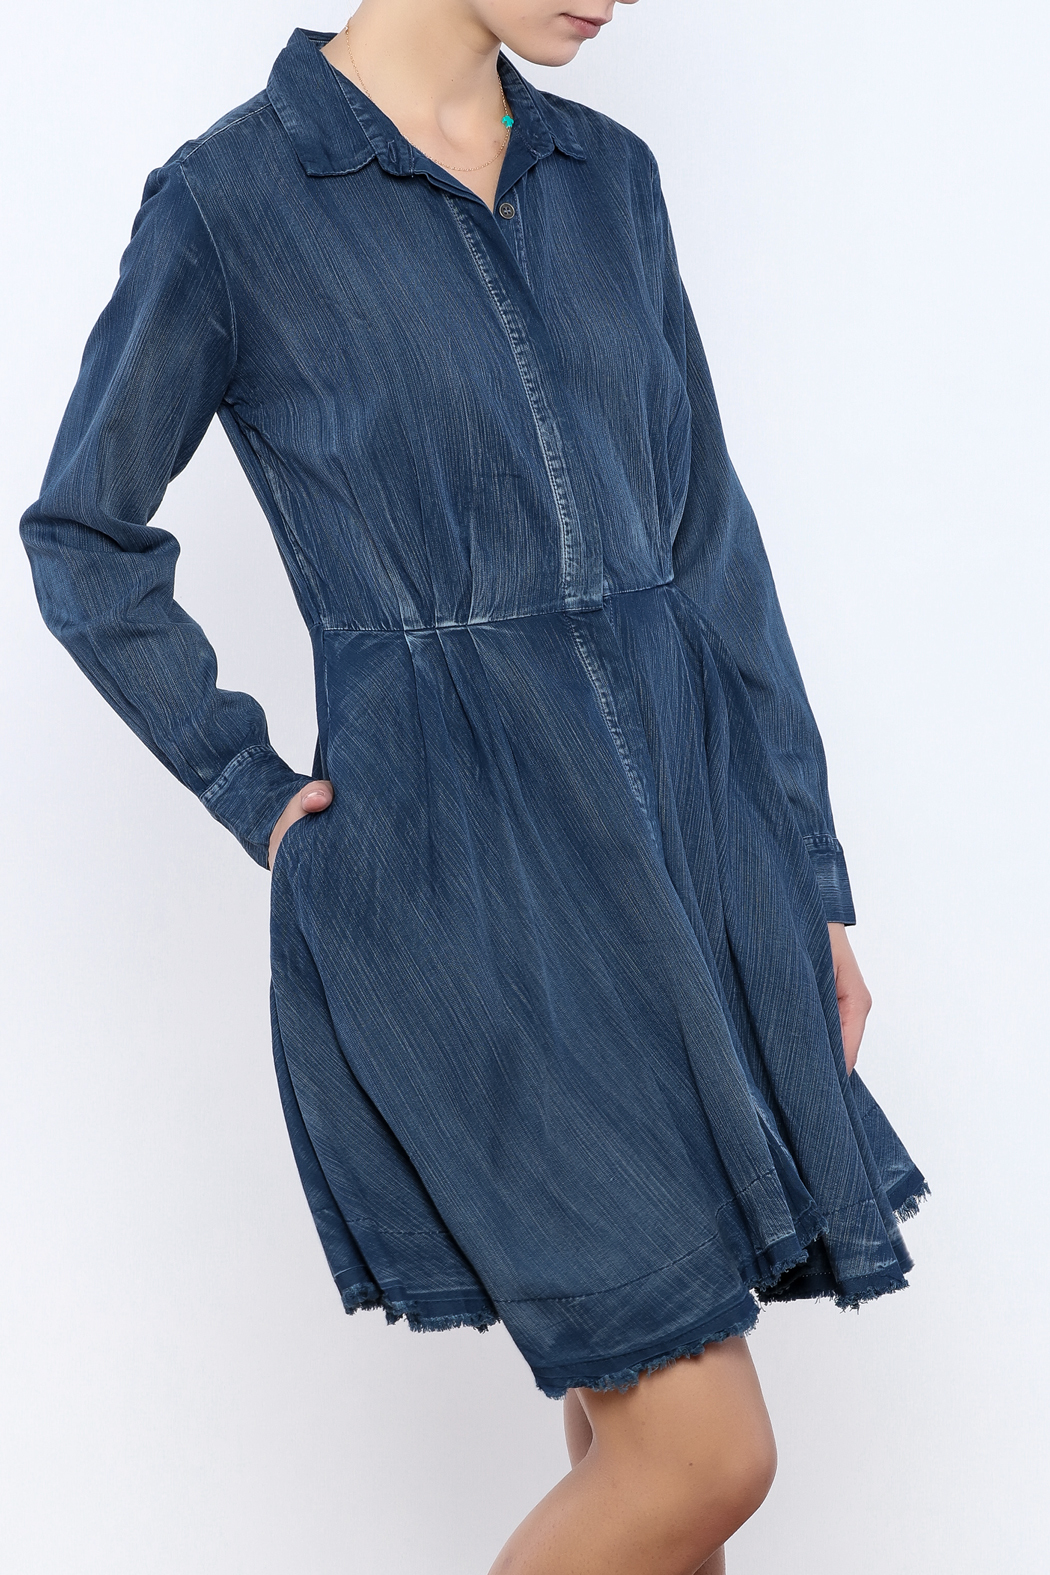 Do & Be Denim Swing Dress - Main Image